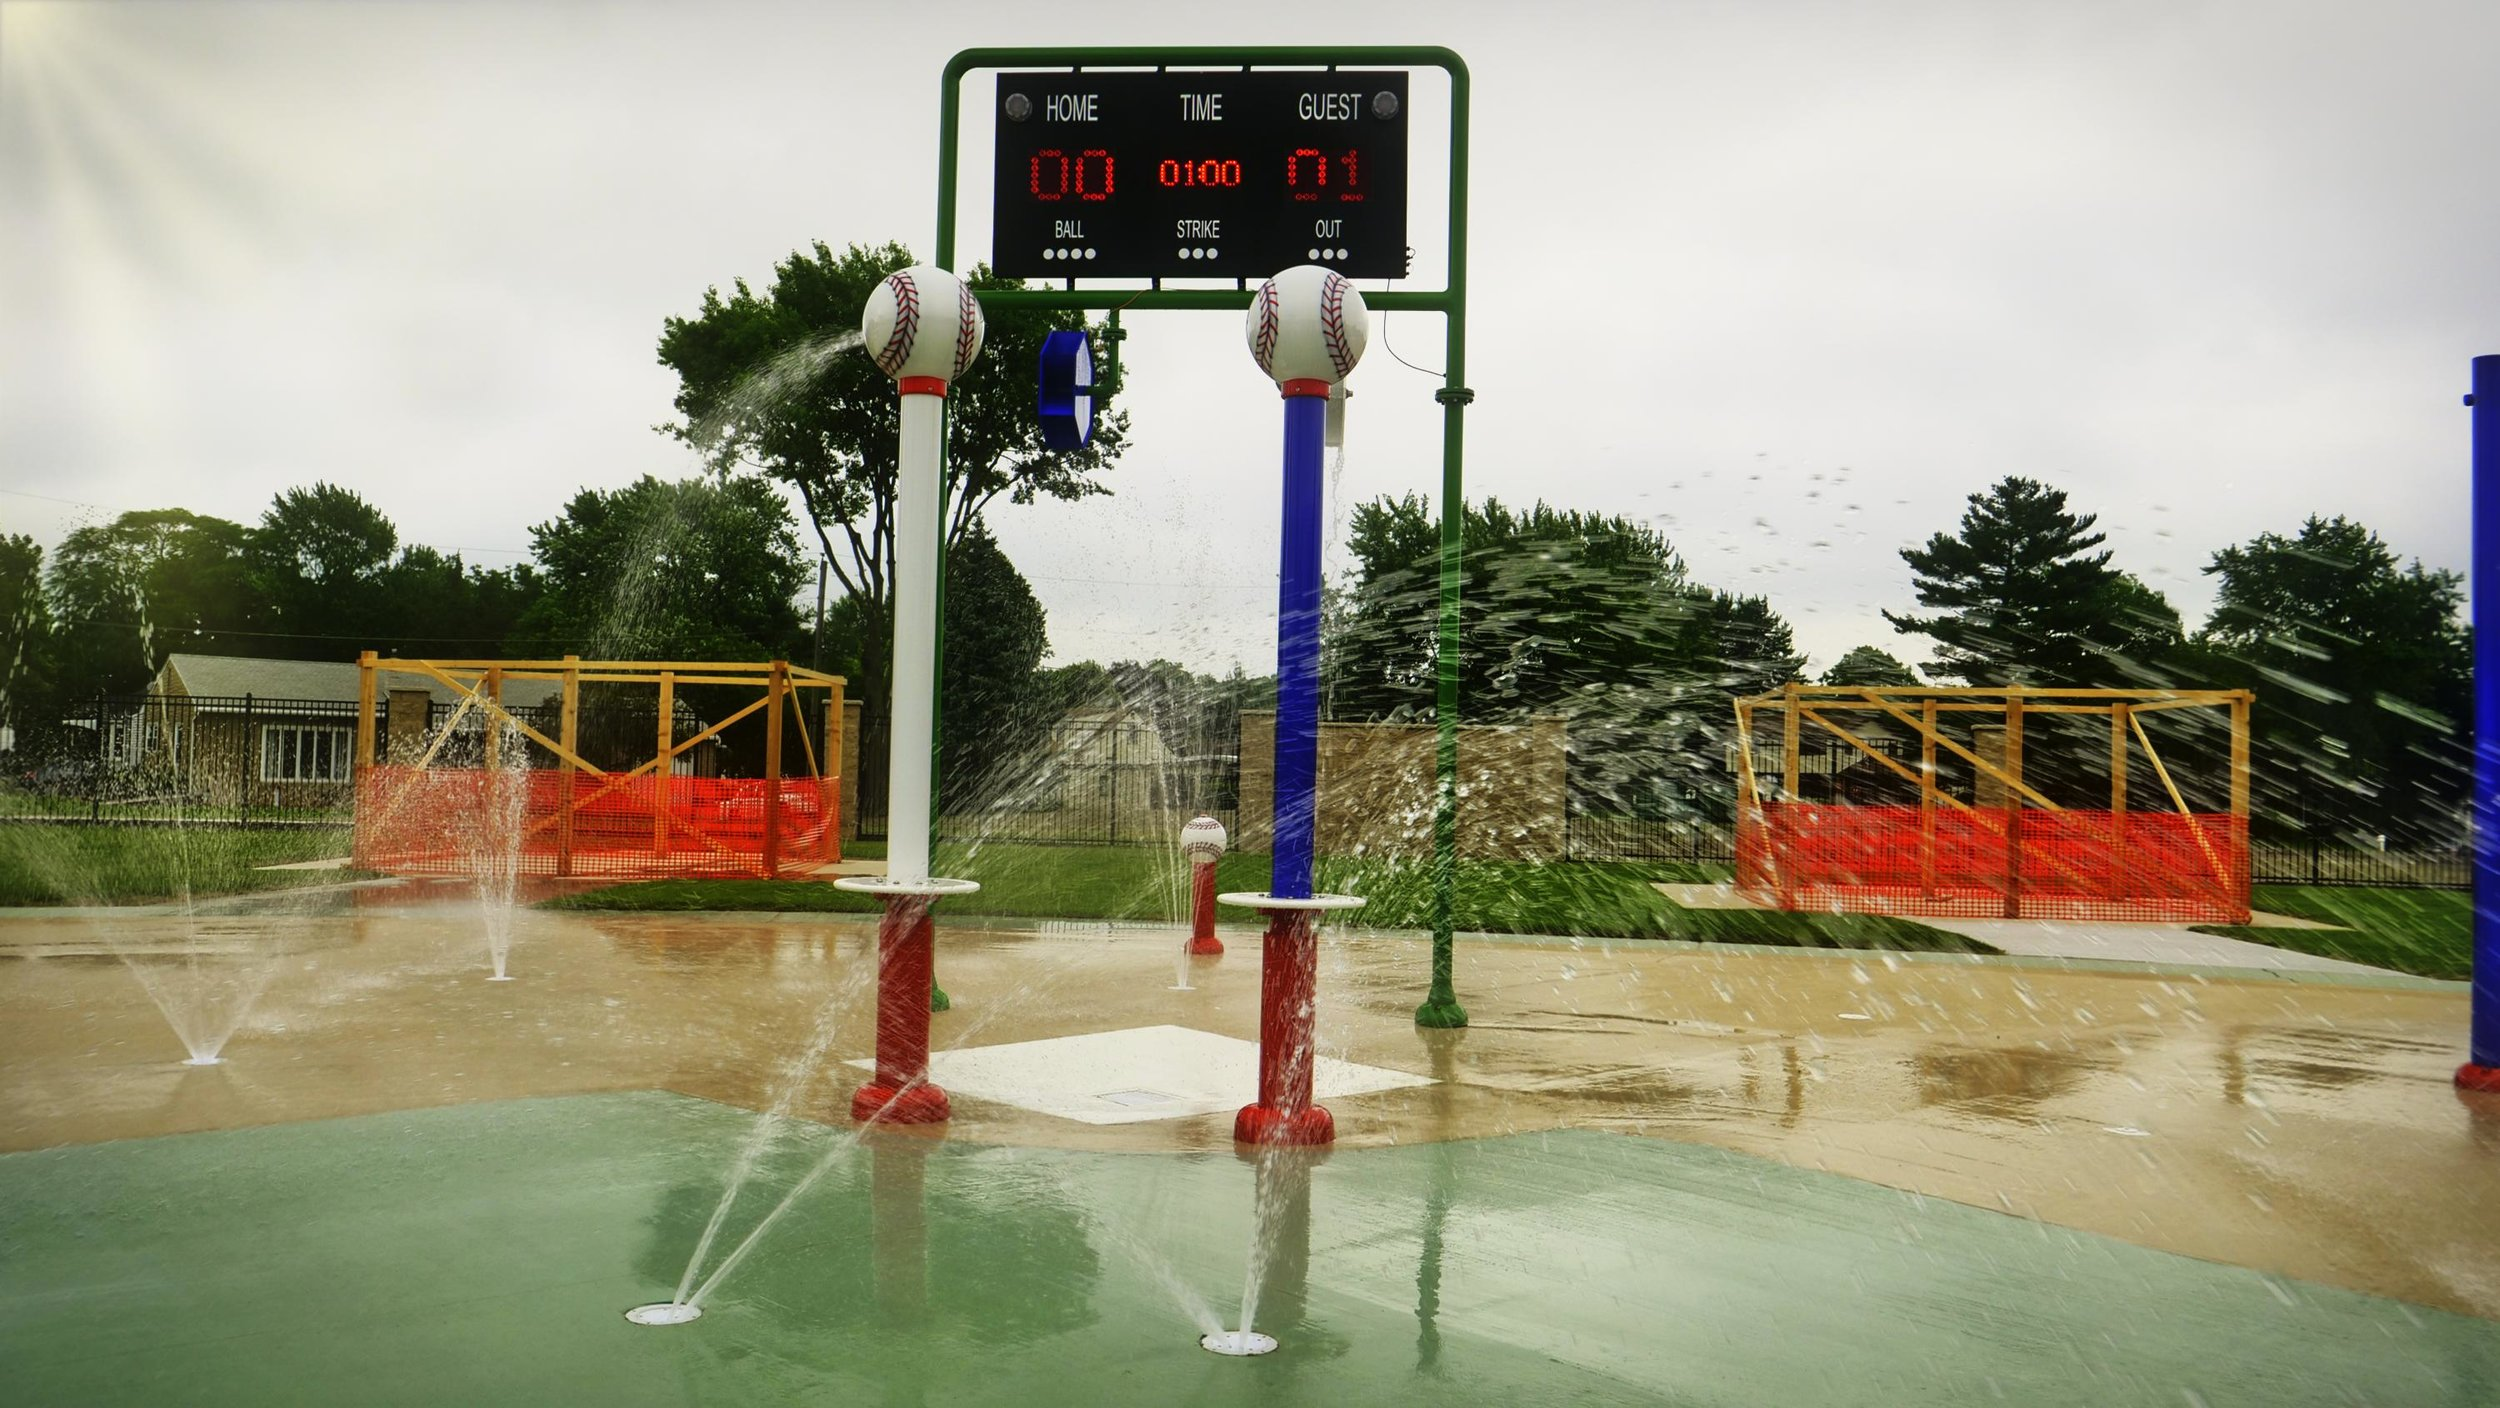 Score board  with baseball bases in the kids play area with a baseball theme at Peru's Splash Field in IL